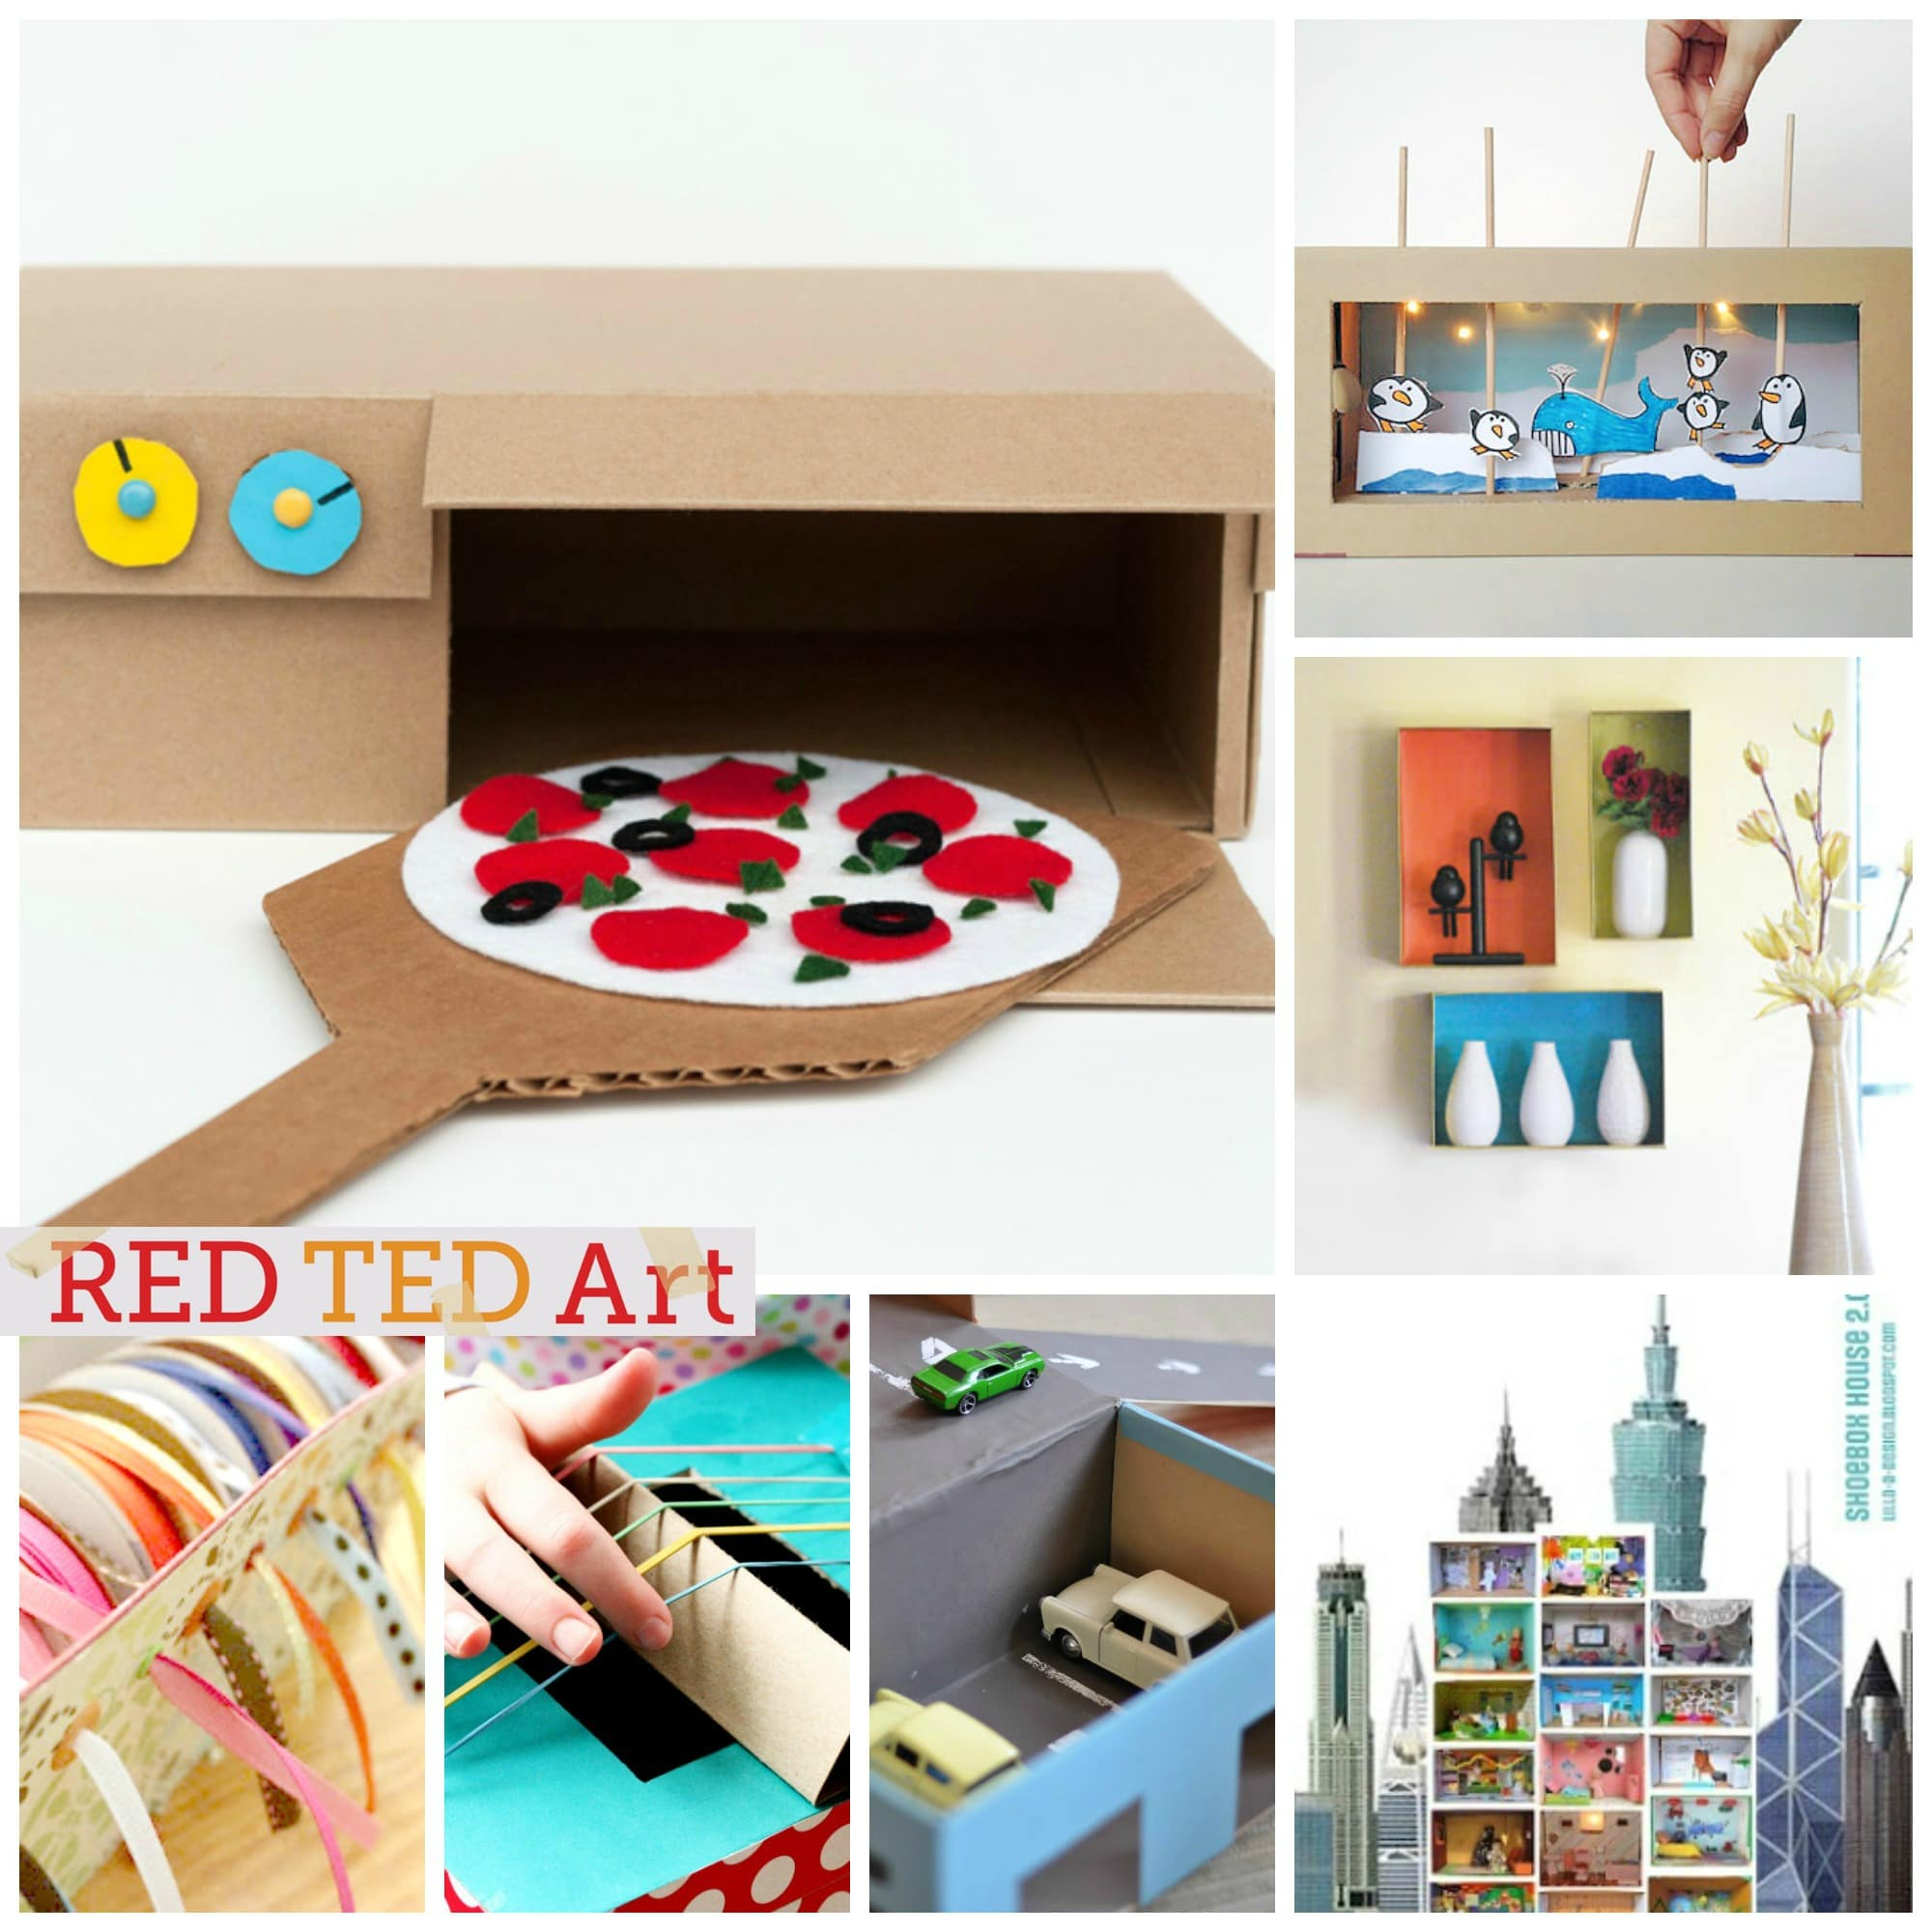 30 Shoe Box Craft Ideas Red Ted Art Make Crafting With Kids Easy Fun